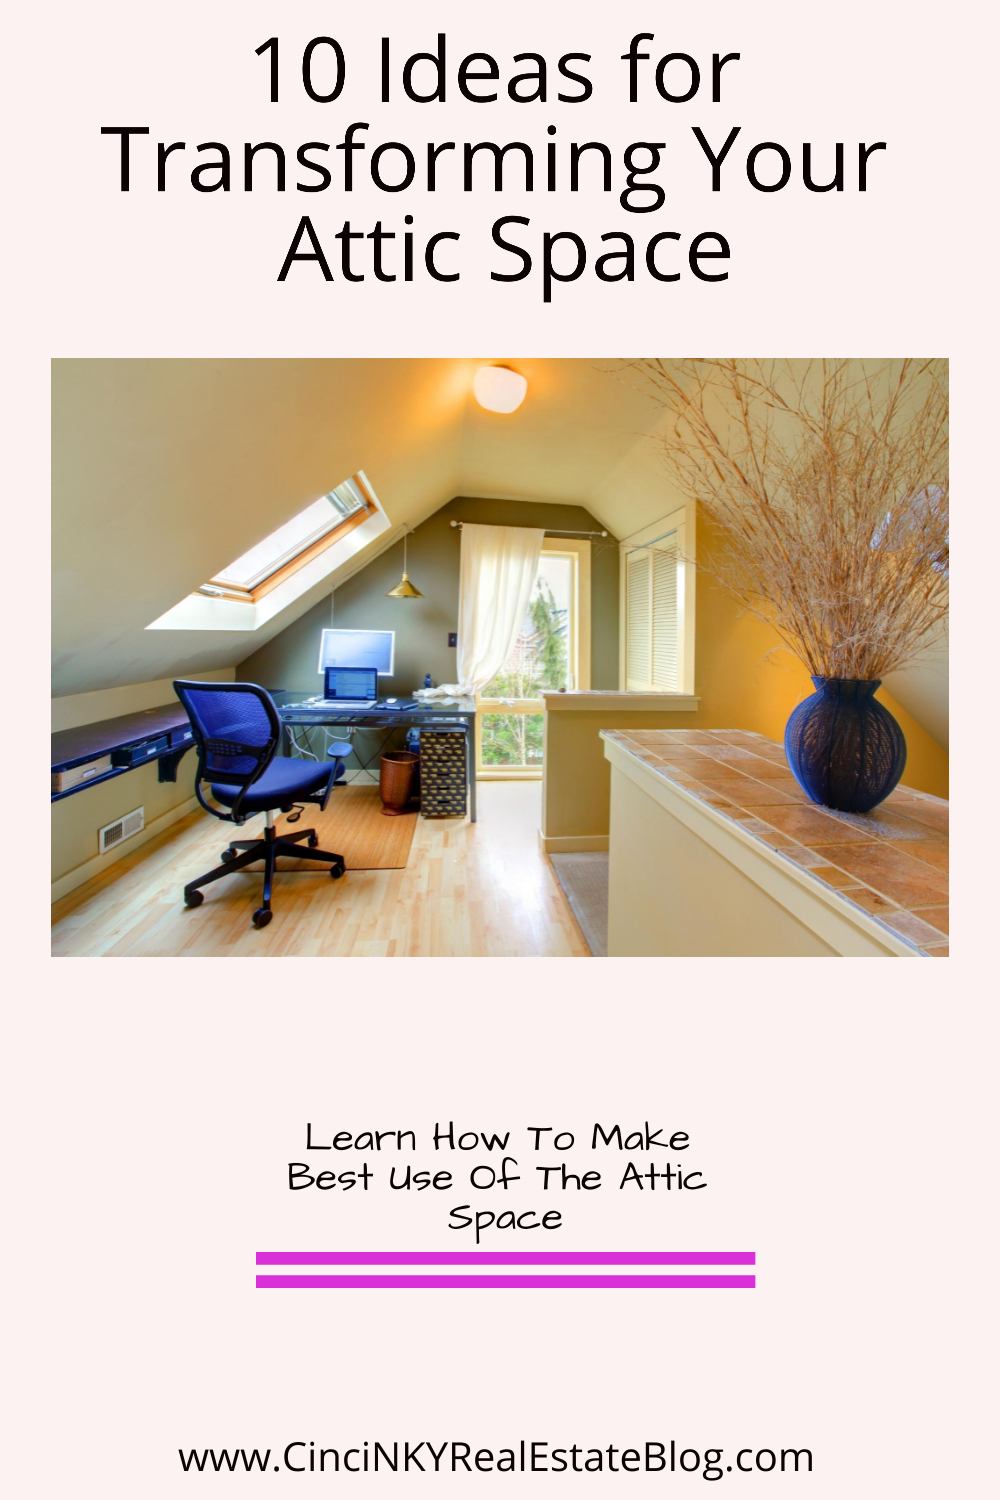 10 Ideas for Transforming Your Attic Space